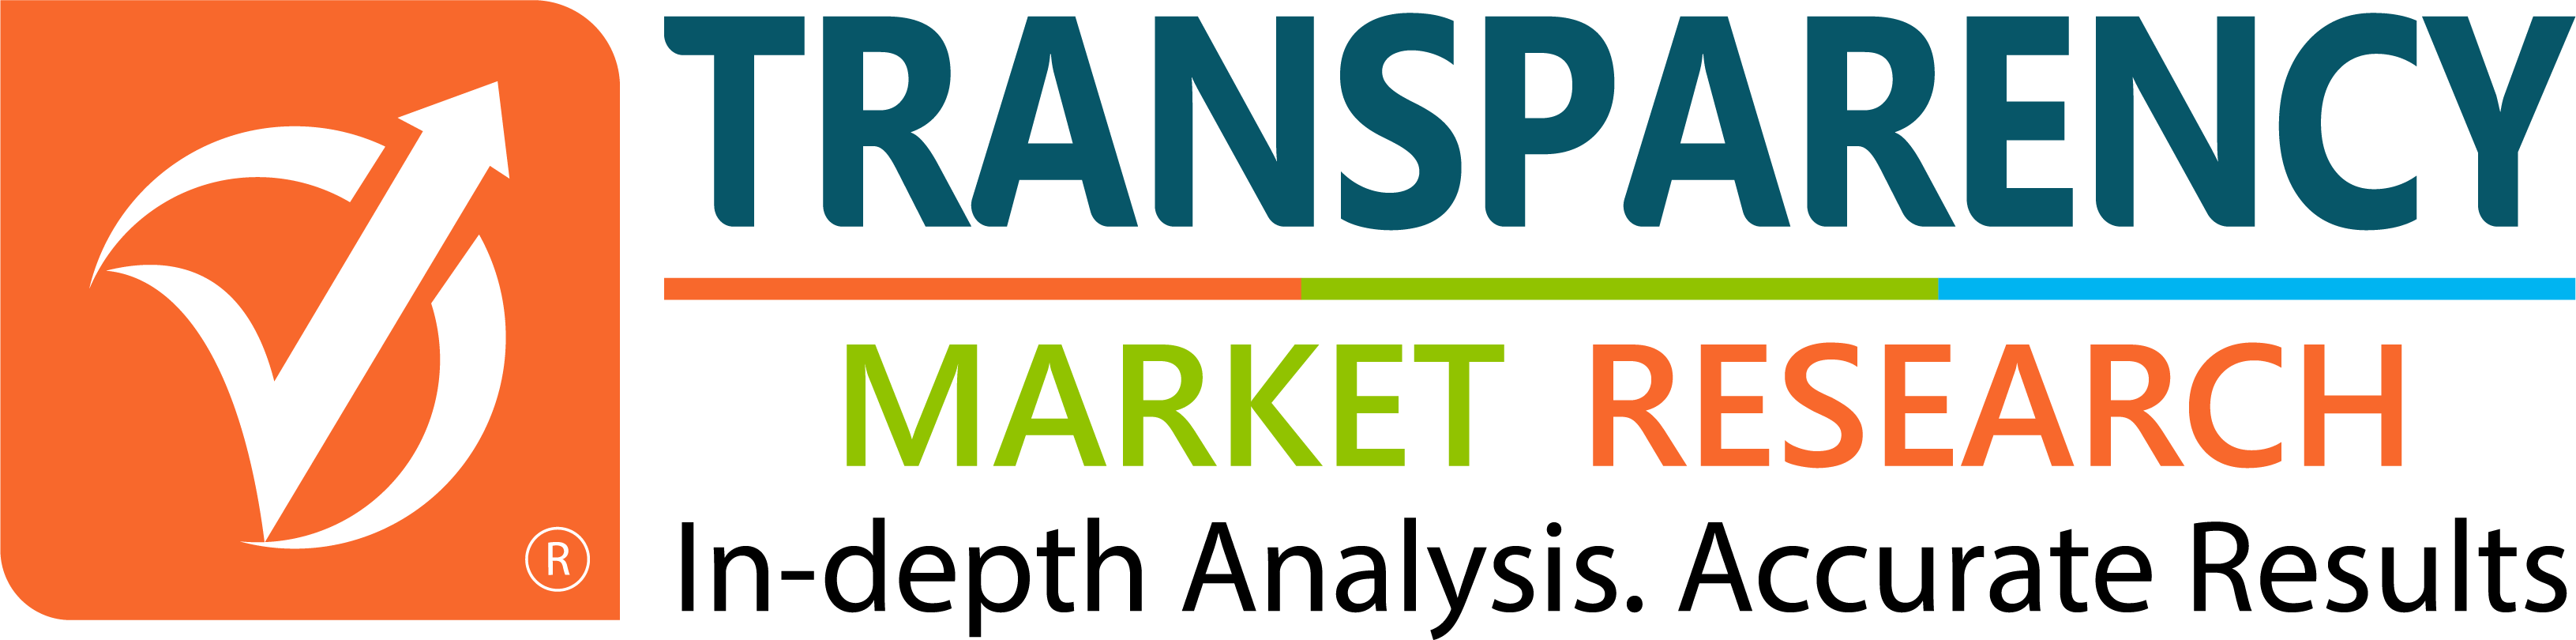 Tire derived Fuel Market Trends: Rising Environmental Regulations is Key Factor for Industry Growth - Research by TMR